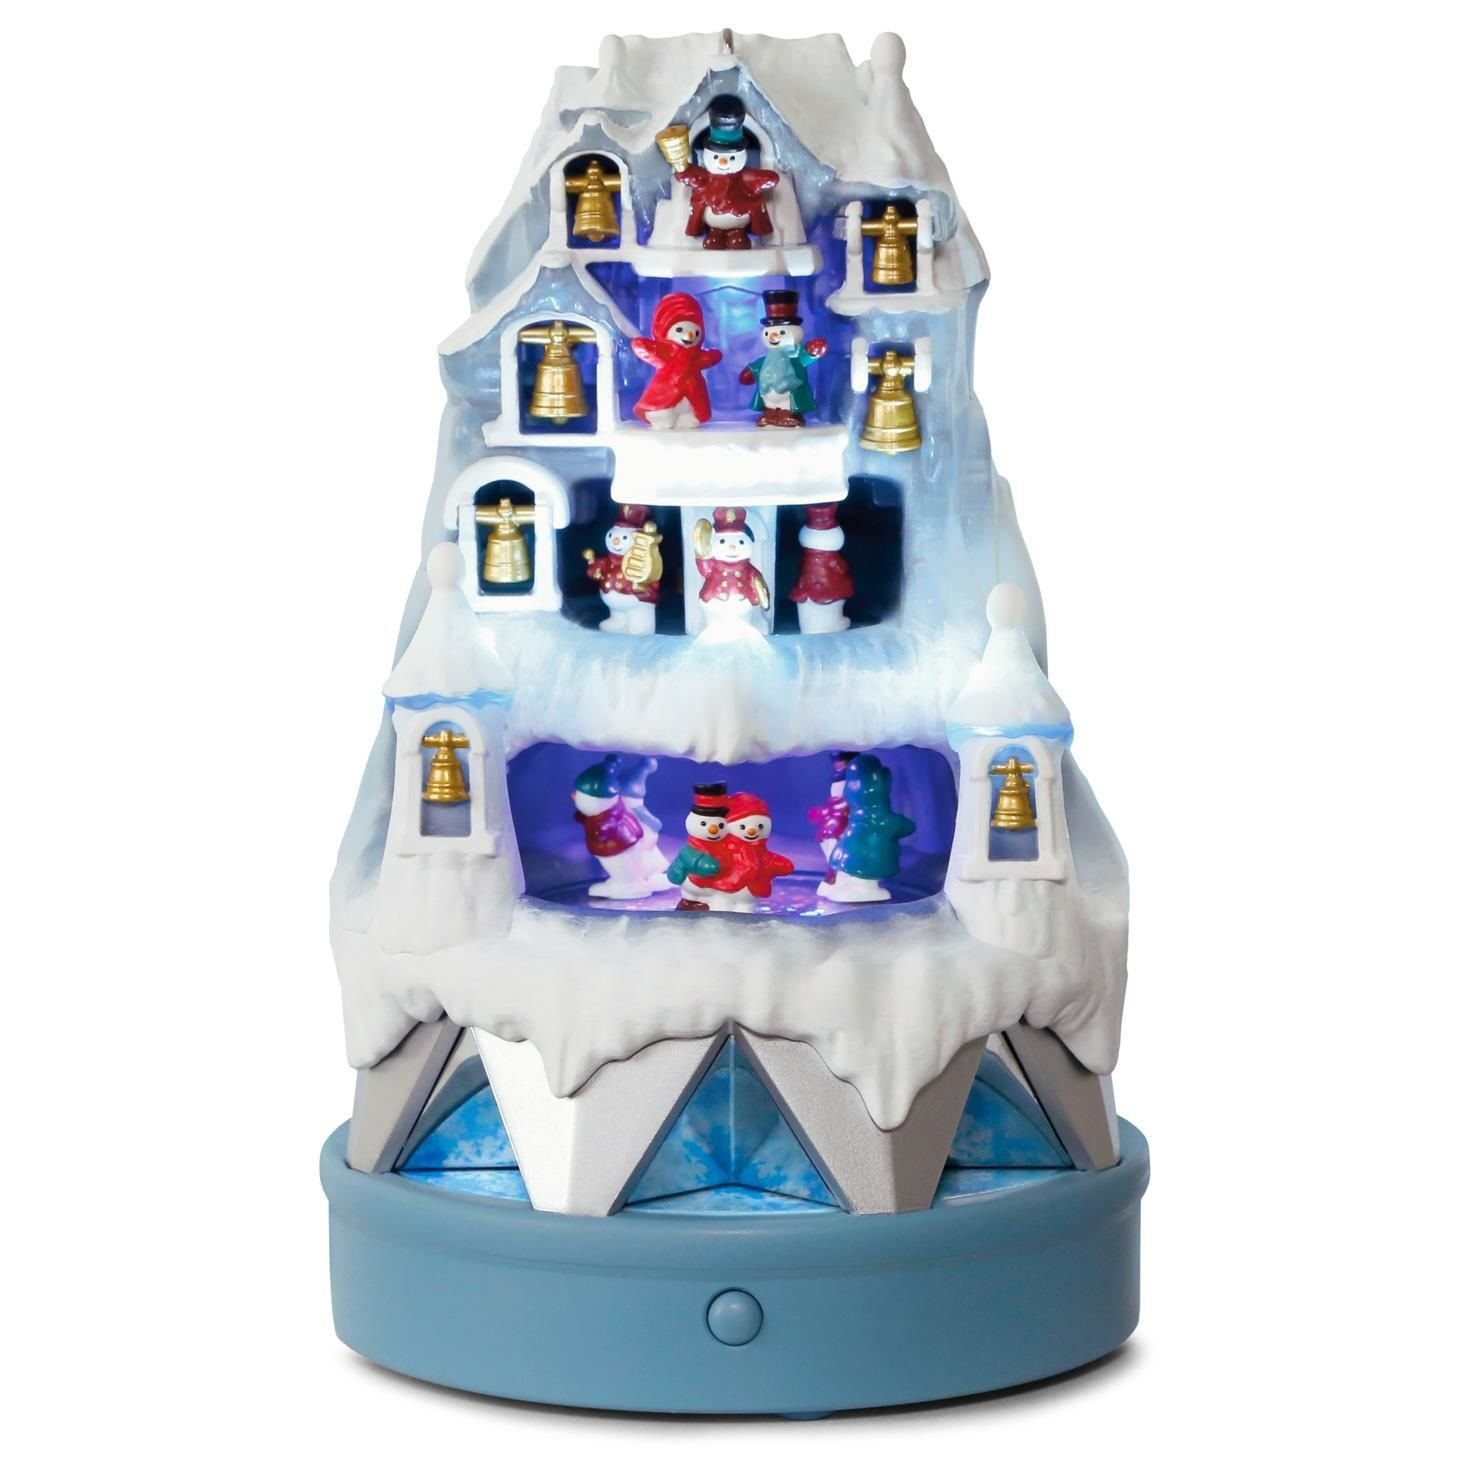 Hallmark 2016 Christmas Ornaments Winter Wonderland